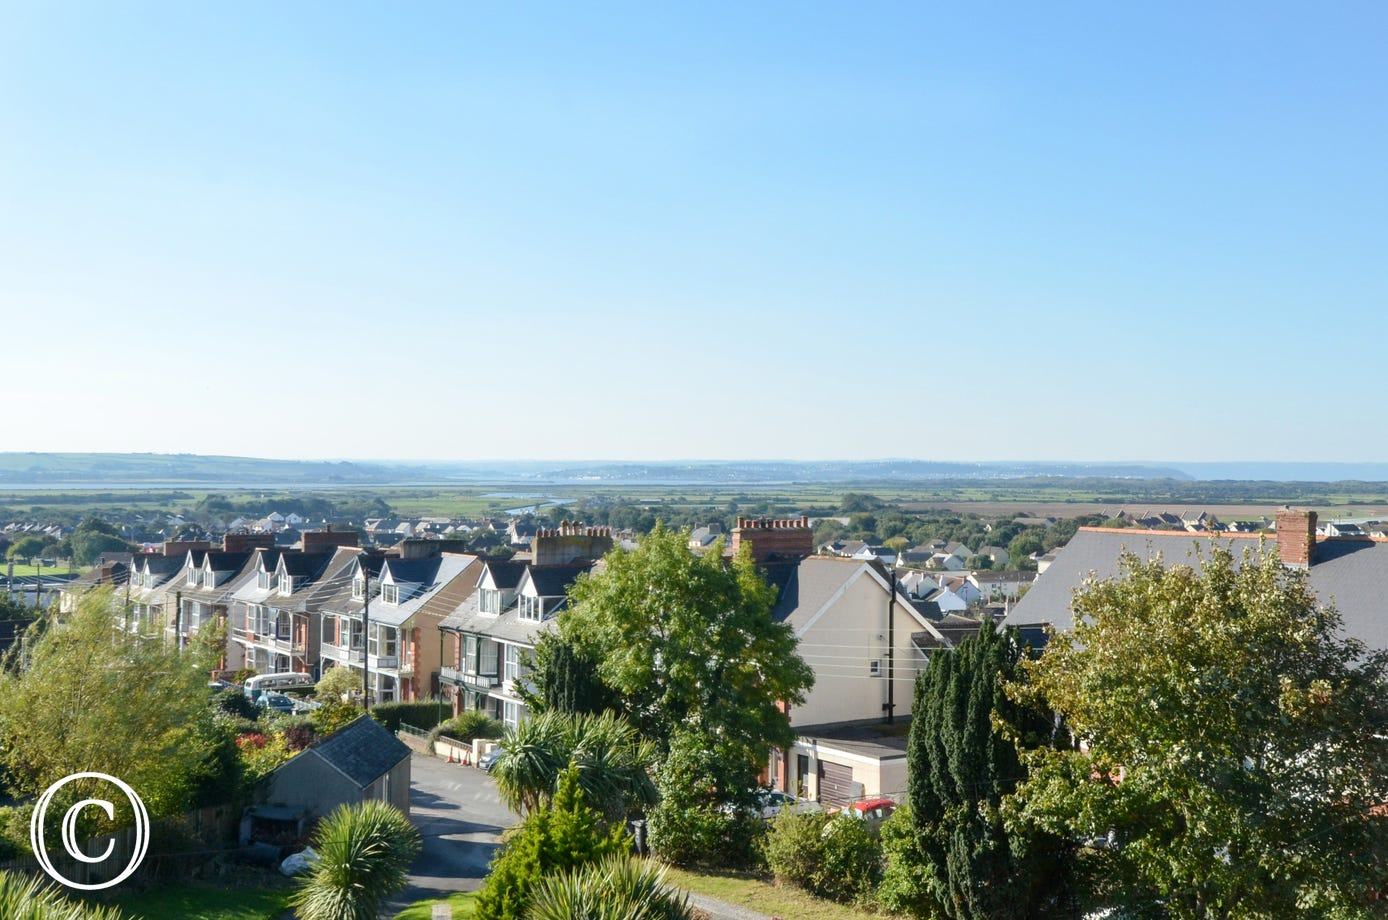 Fantastic views over the village from the property